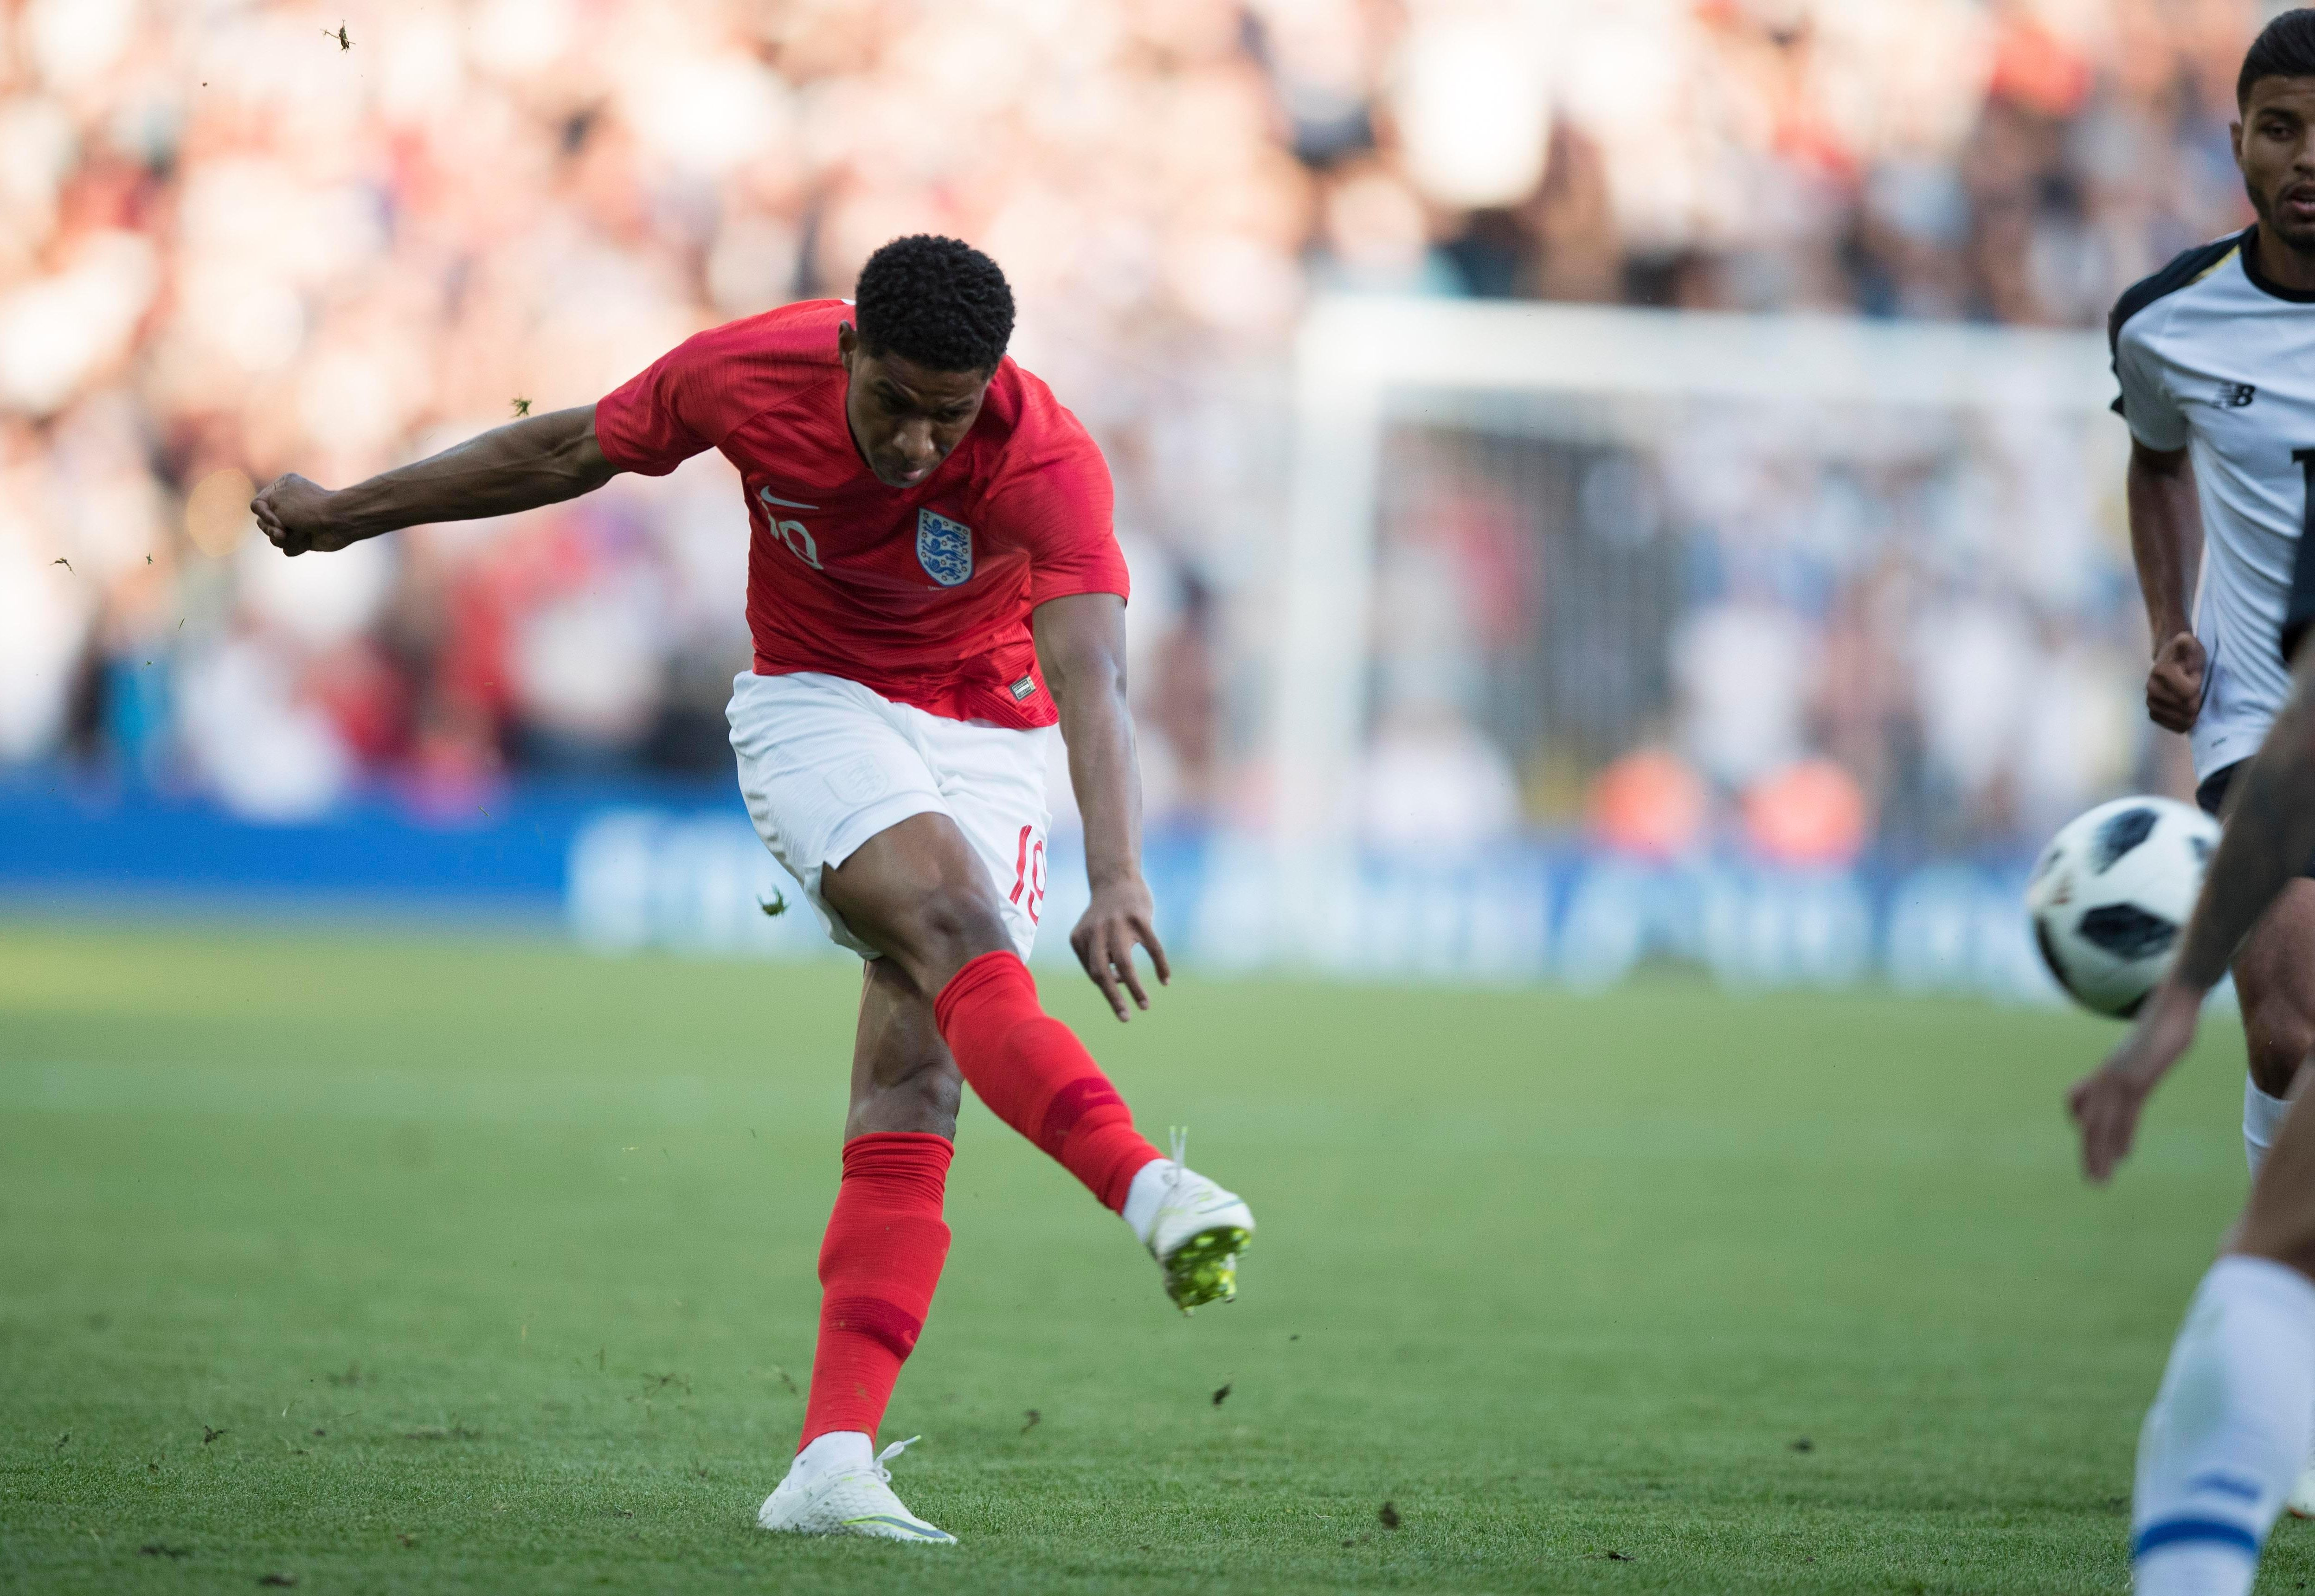 Marcus Rashford lets fly as he opens the scoring for England with a brilliant early goal